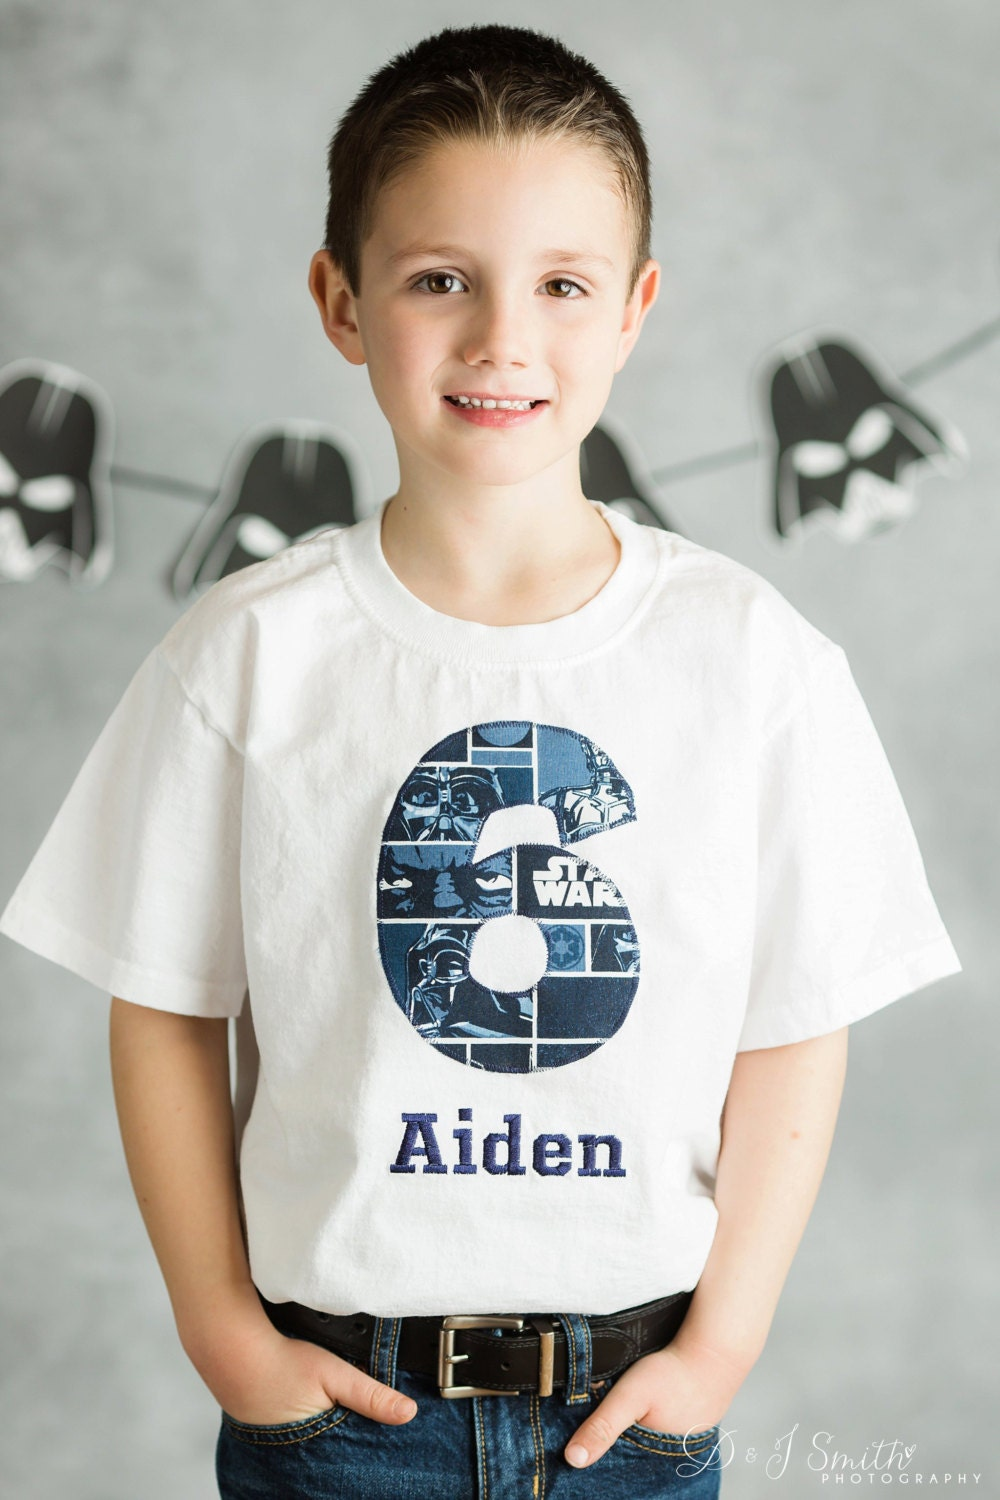 Design your own t-shirt birthday party - Kids Appliqu D Personalized T Shirt R2 D2 Zoom